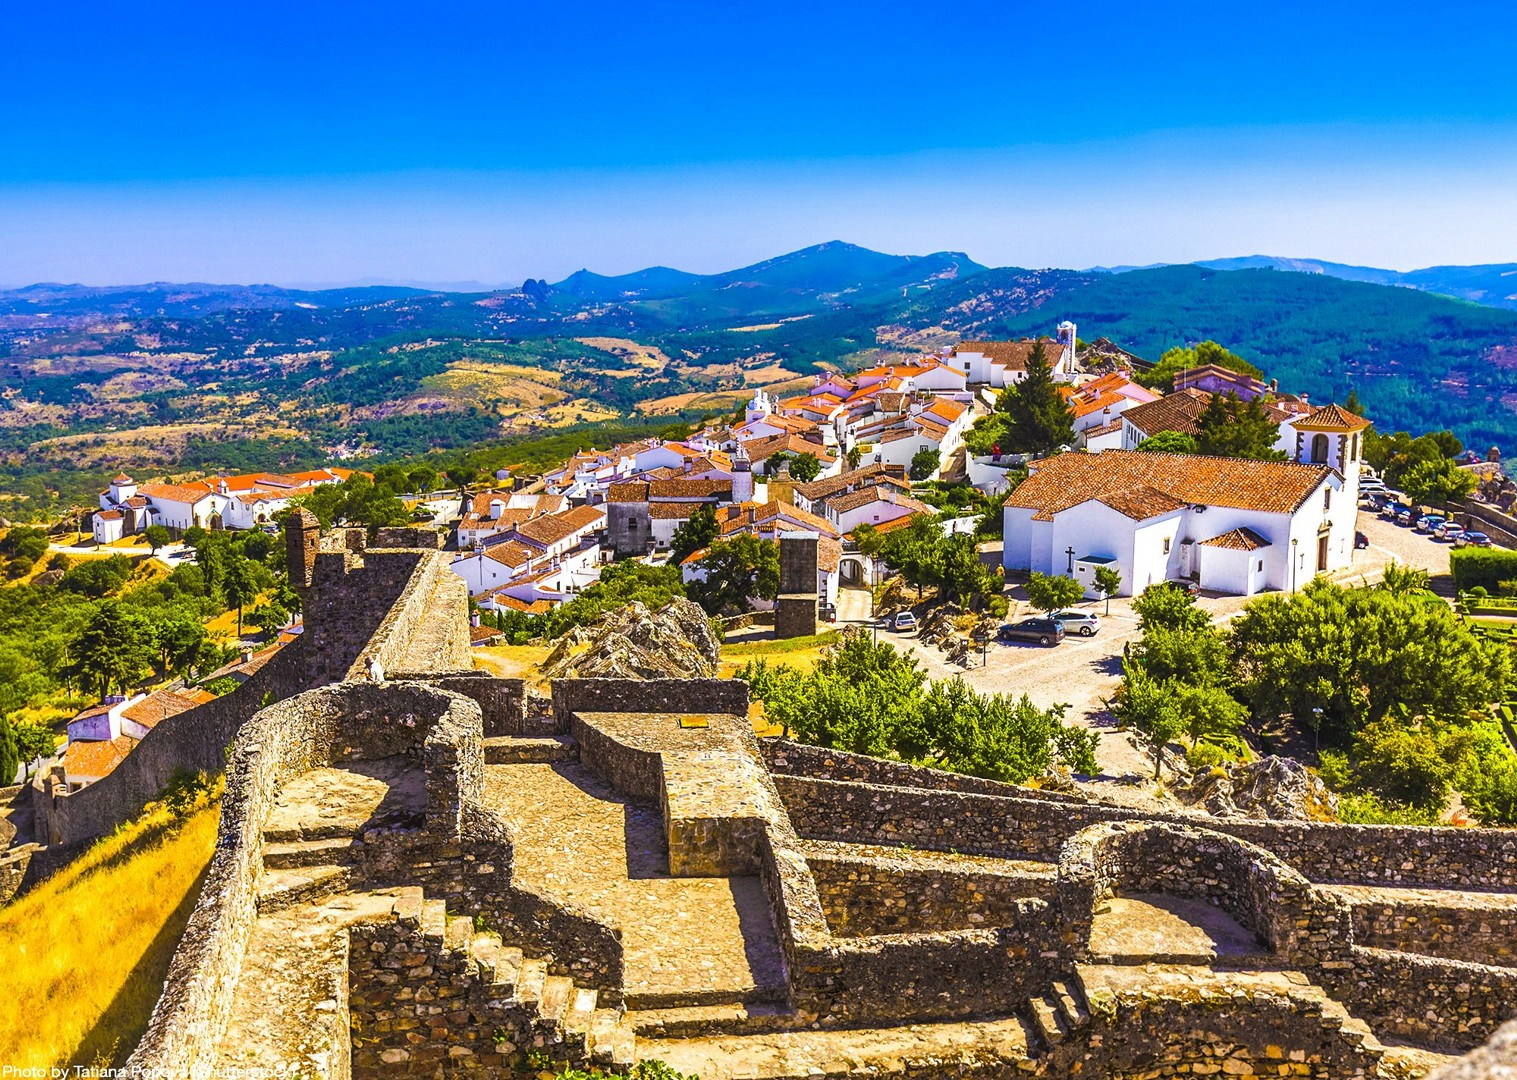 portalegre-portugal-self-guided-leisure-cycling-holiday-tour.jpg - Portugal - Historic Villages - Self-Guided Leisure Cycling Holiday - Leisure Cycling